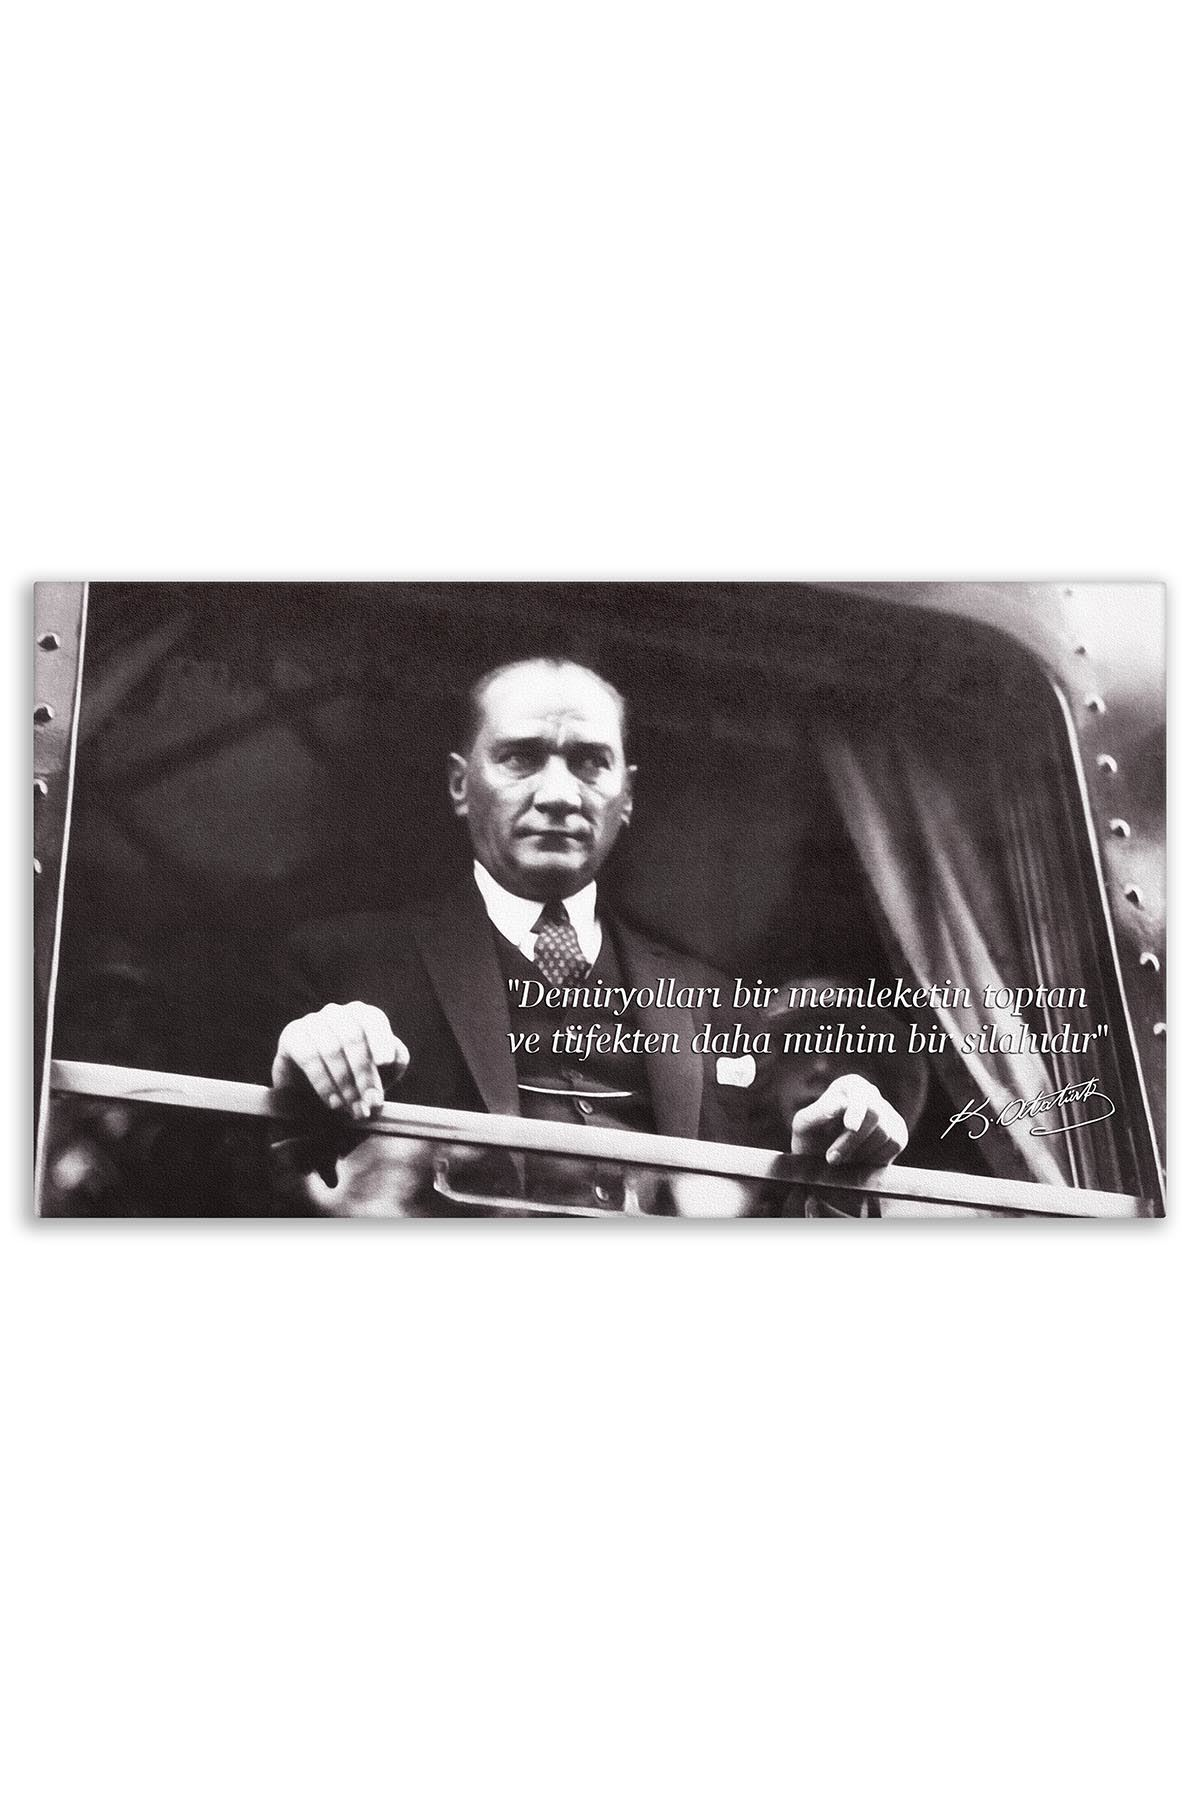 Ataturk Canvas Board With Turkish Flag| Printed Canvas Board | Customized Canvas Board